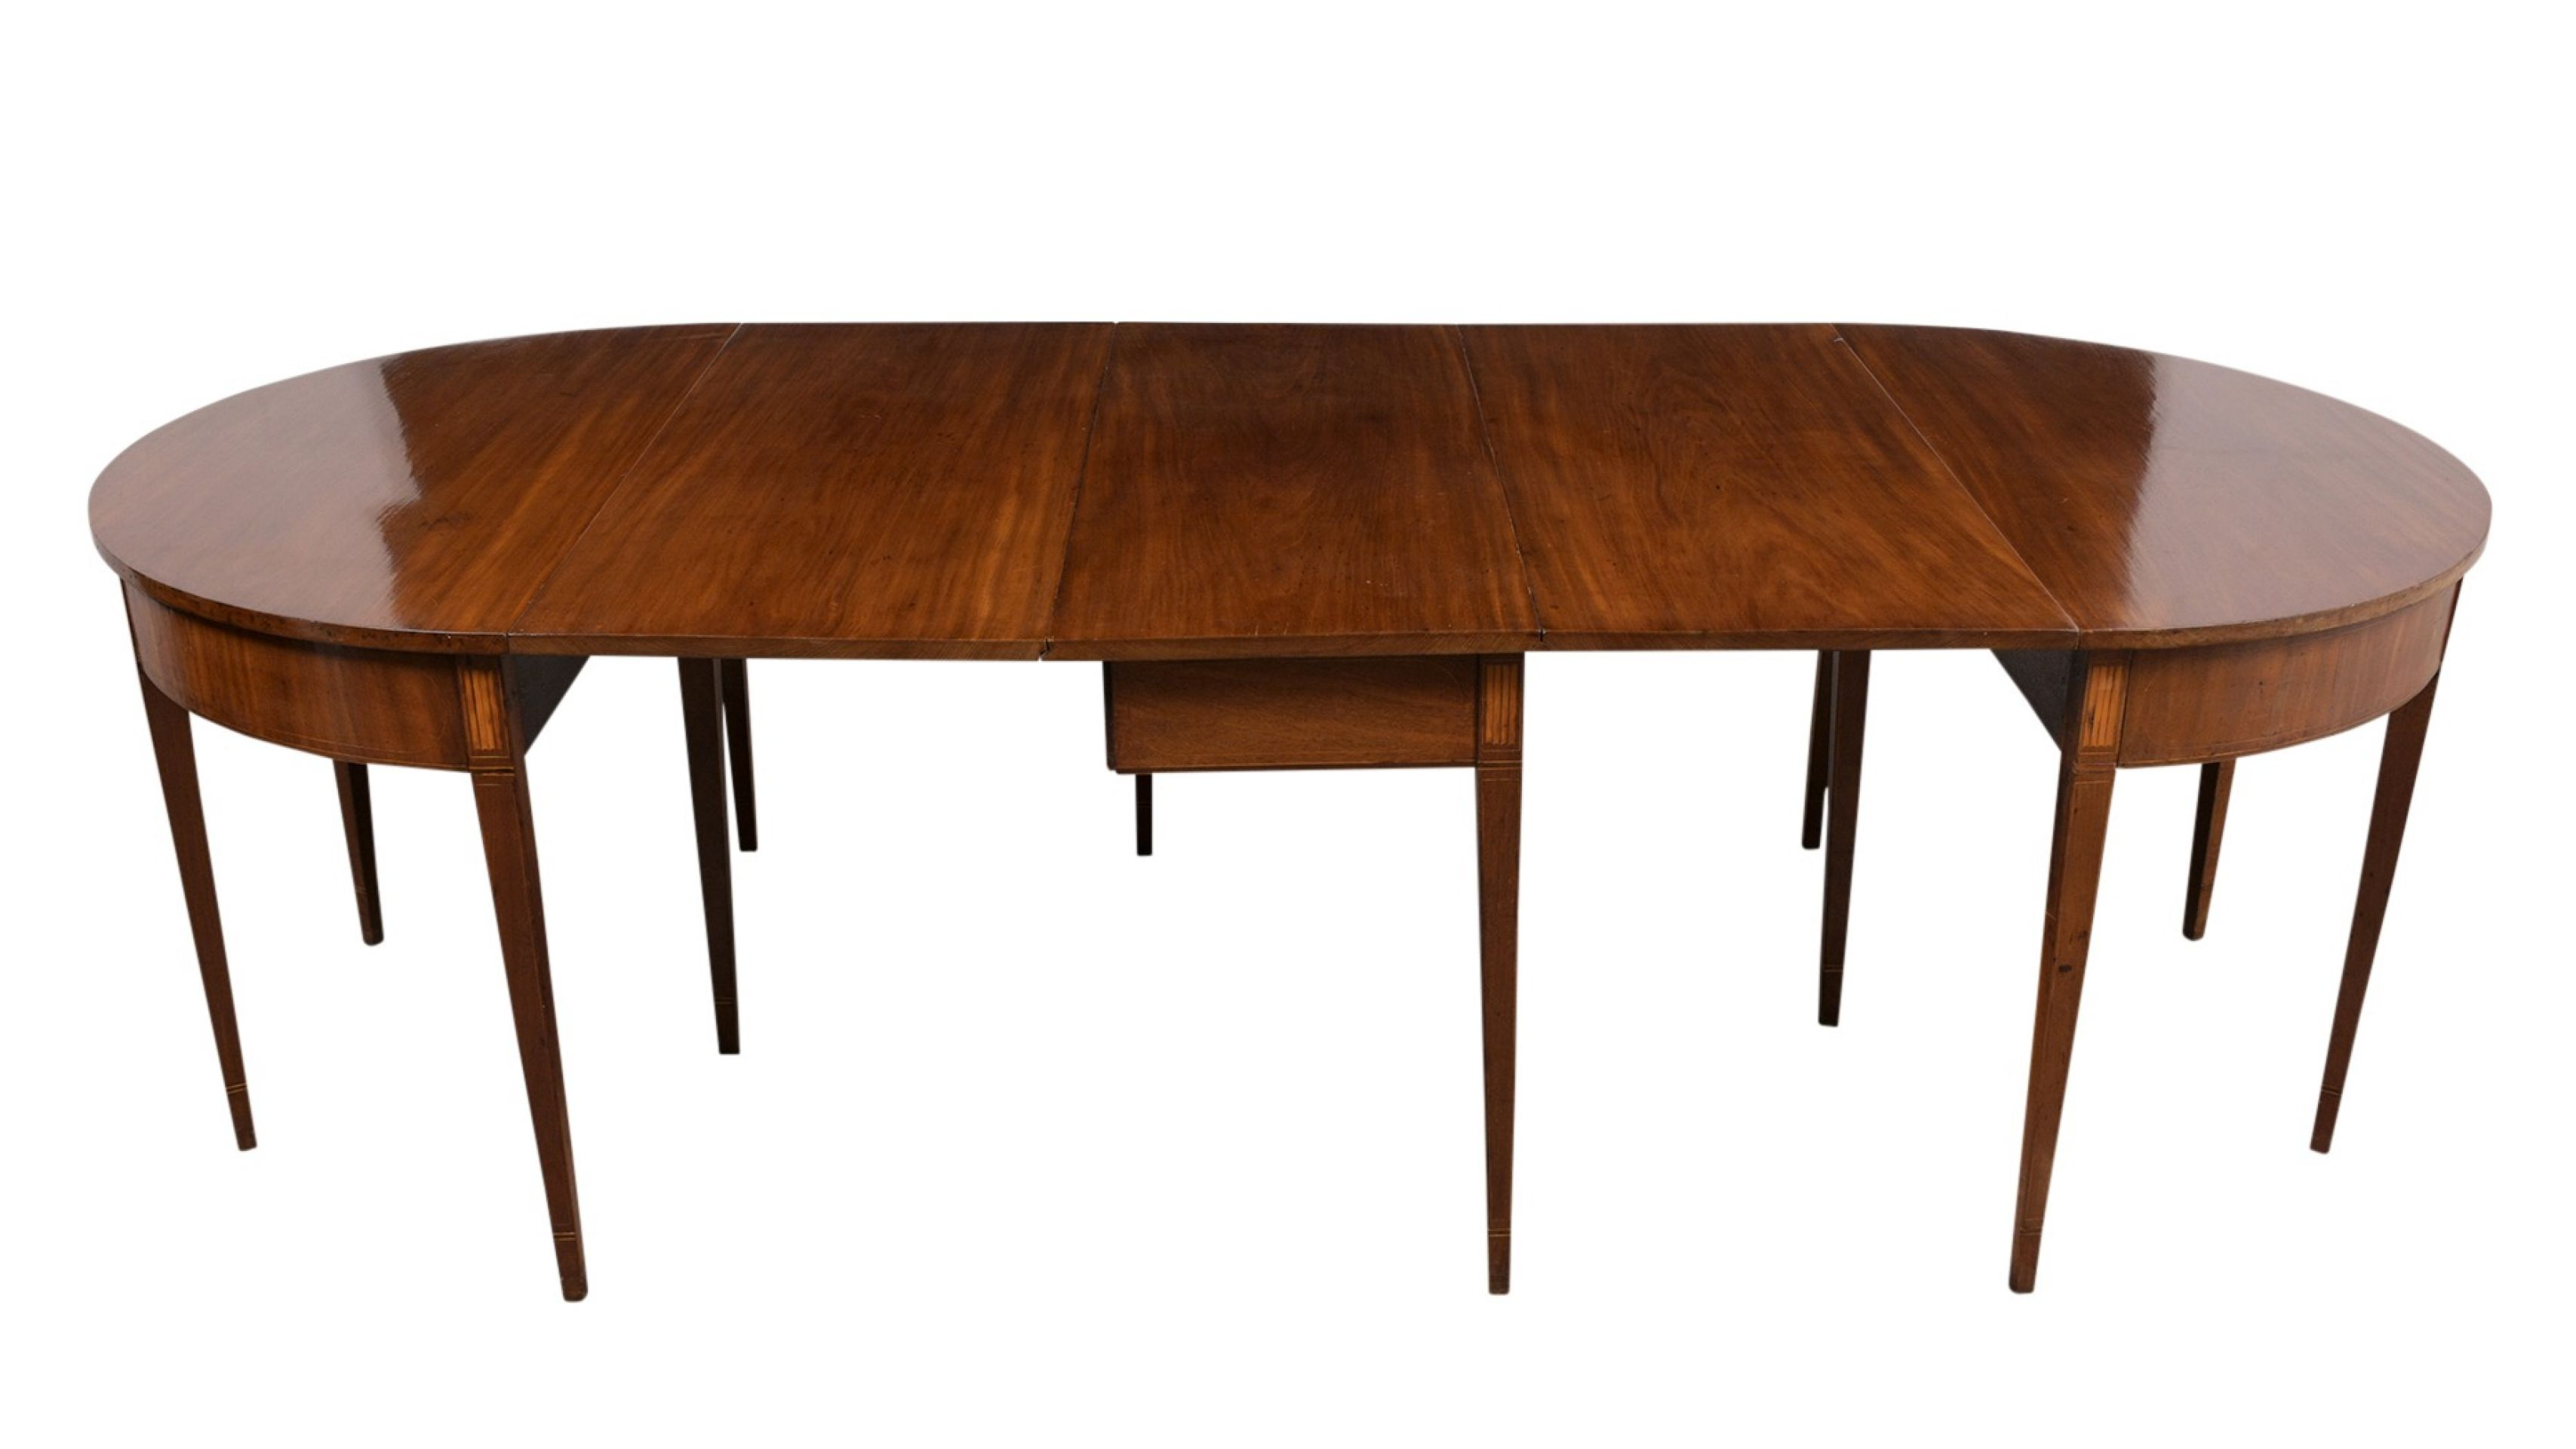 18th Century English Federal Dining Table